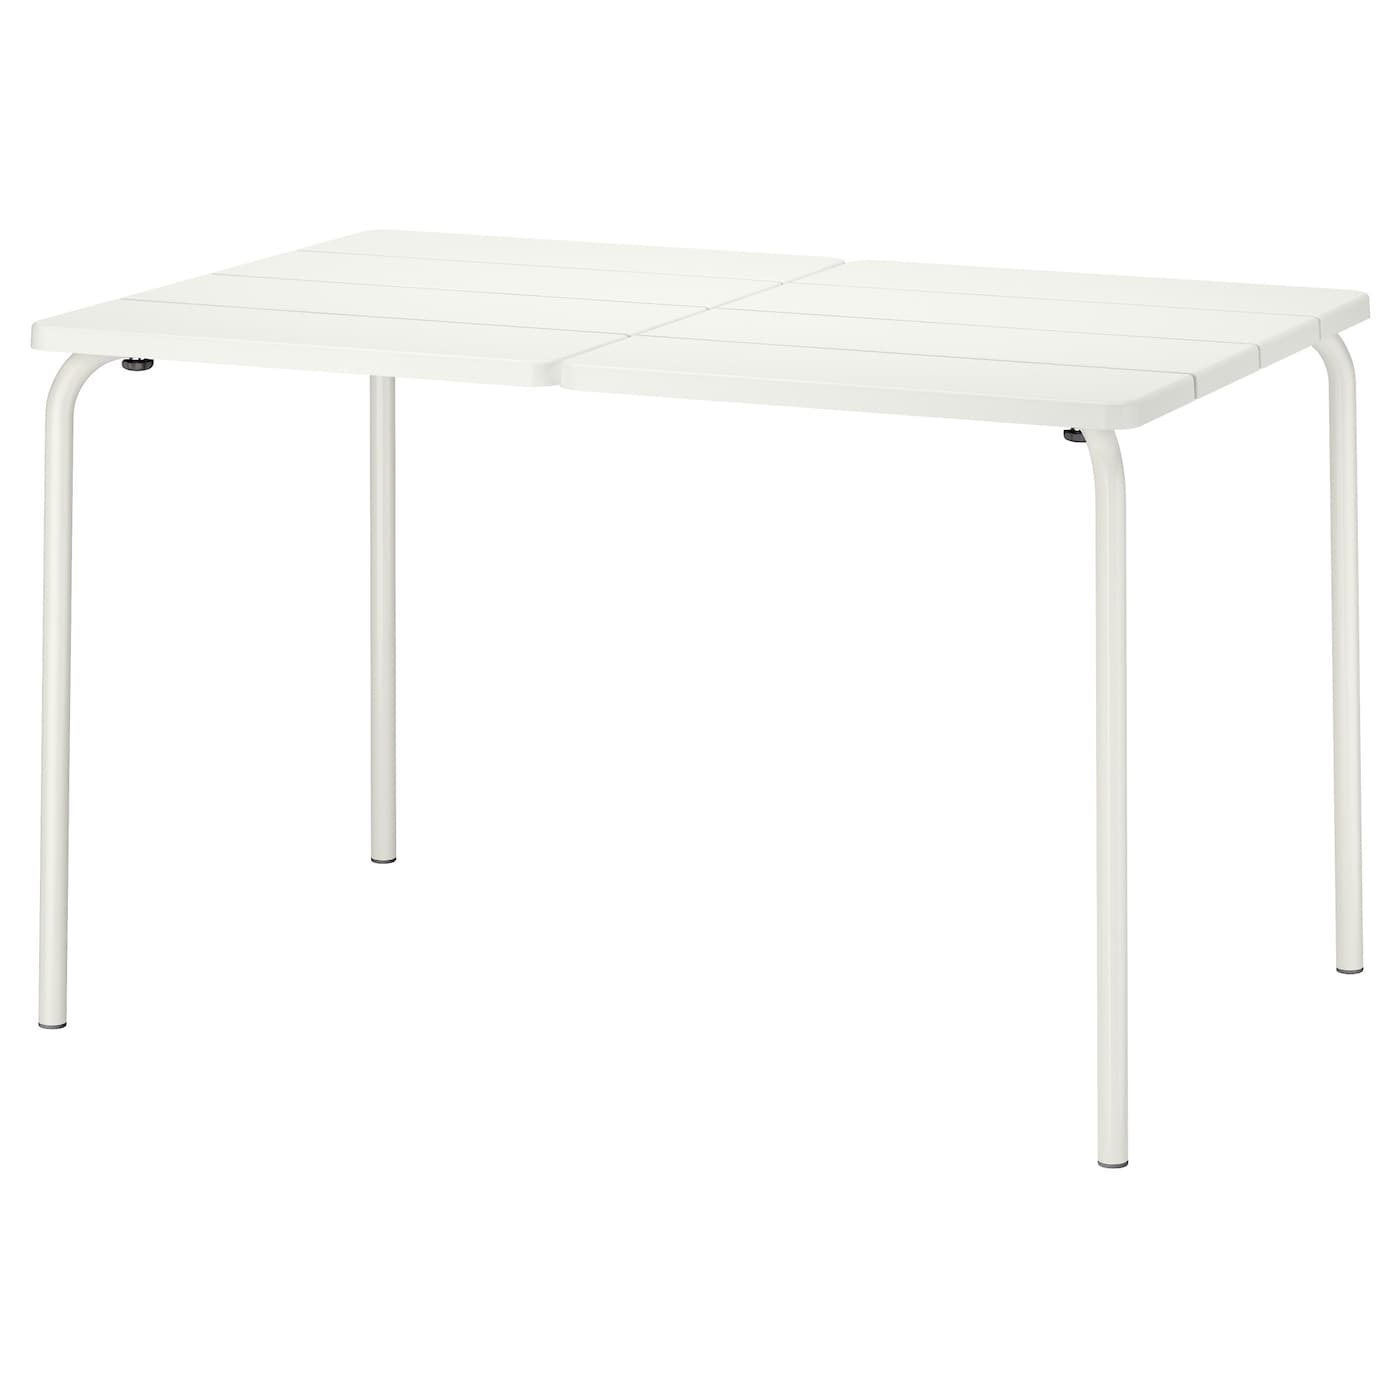 IKEA VÄDDÖ table, outdoor Easy to keep clean – just wipe with a damp cloth.